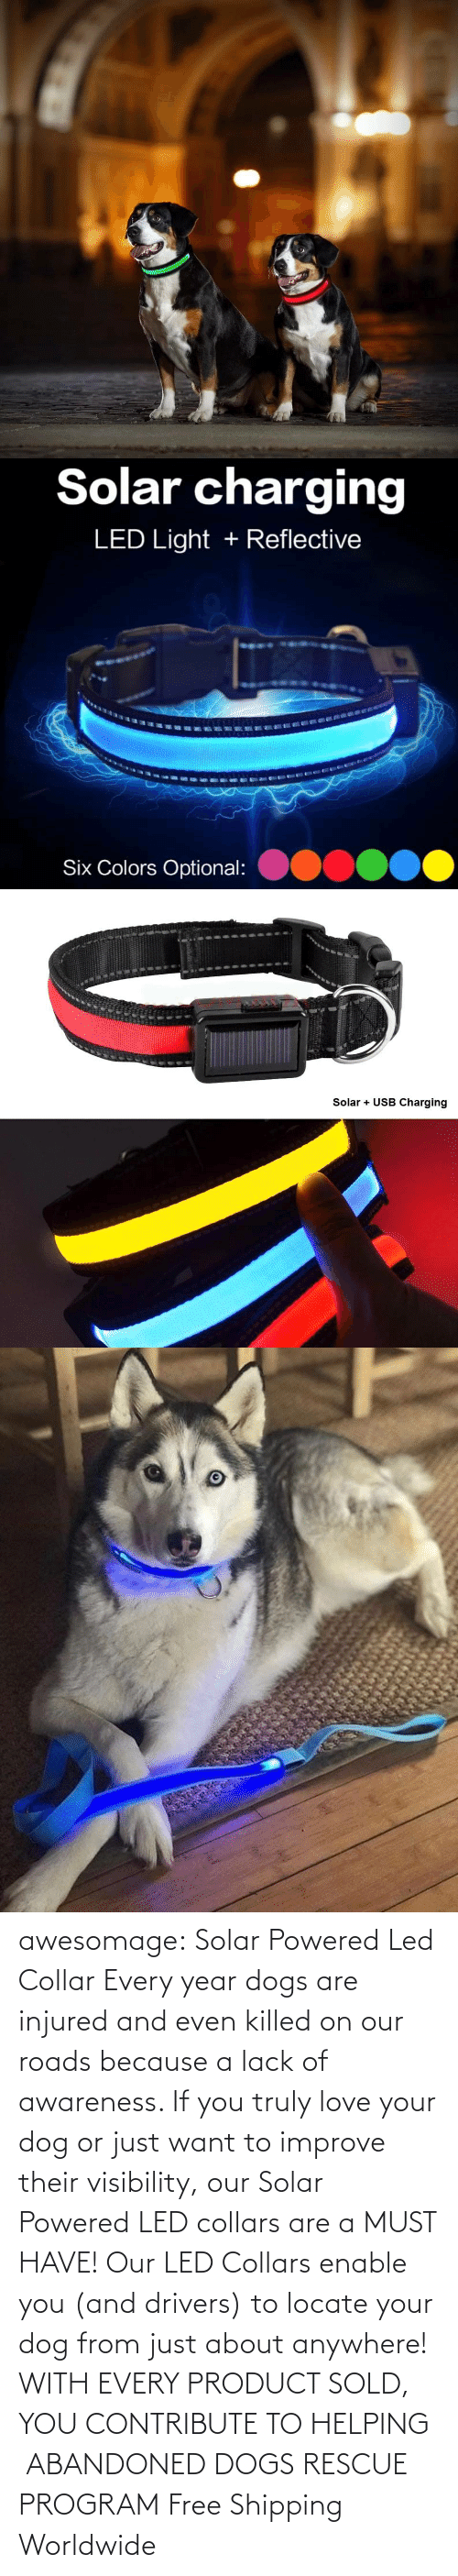 Dogs, Love, and Tumblr: awesomage: Solar Powered Led Collar   Every year dogs are injured and even killed on our roads because a lack of awareness. If you truly love your dog or just want to improve their visibility, our Solar Powered LED collars are a MUST HAVE!   Our LED Collars enable you (and drivers) to locate your dog from just about anywhere!     WITH EVERY PRODUCT SOLD, YOU CONTRIBUTE TO HELPING ABANDONED DOGS RESCUE PROGRAM     Free Shipping Worldwide